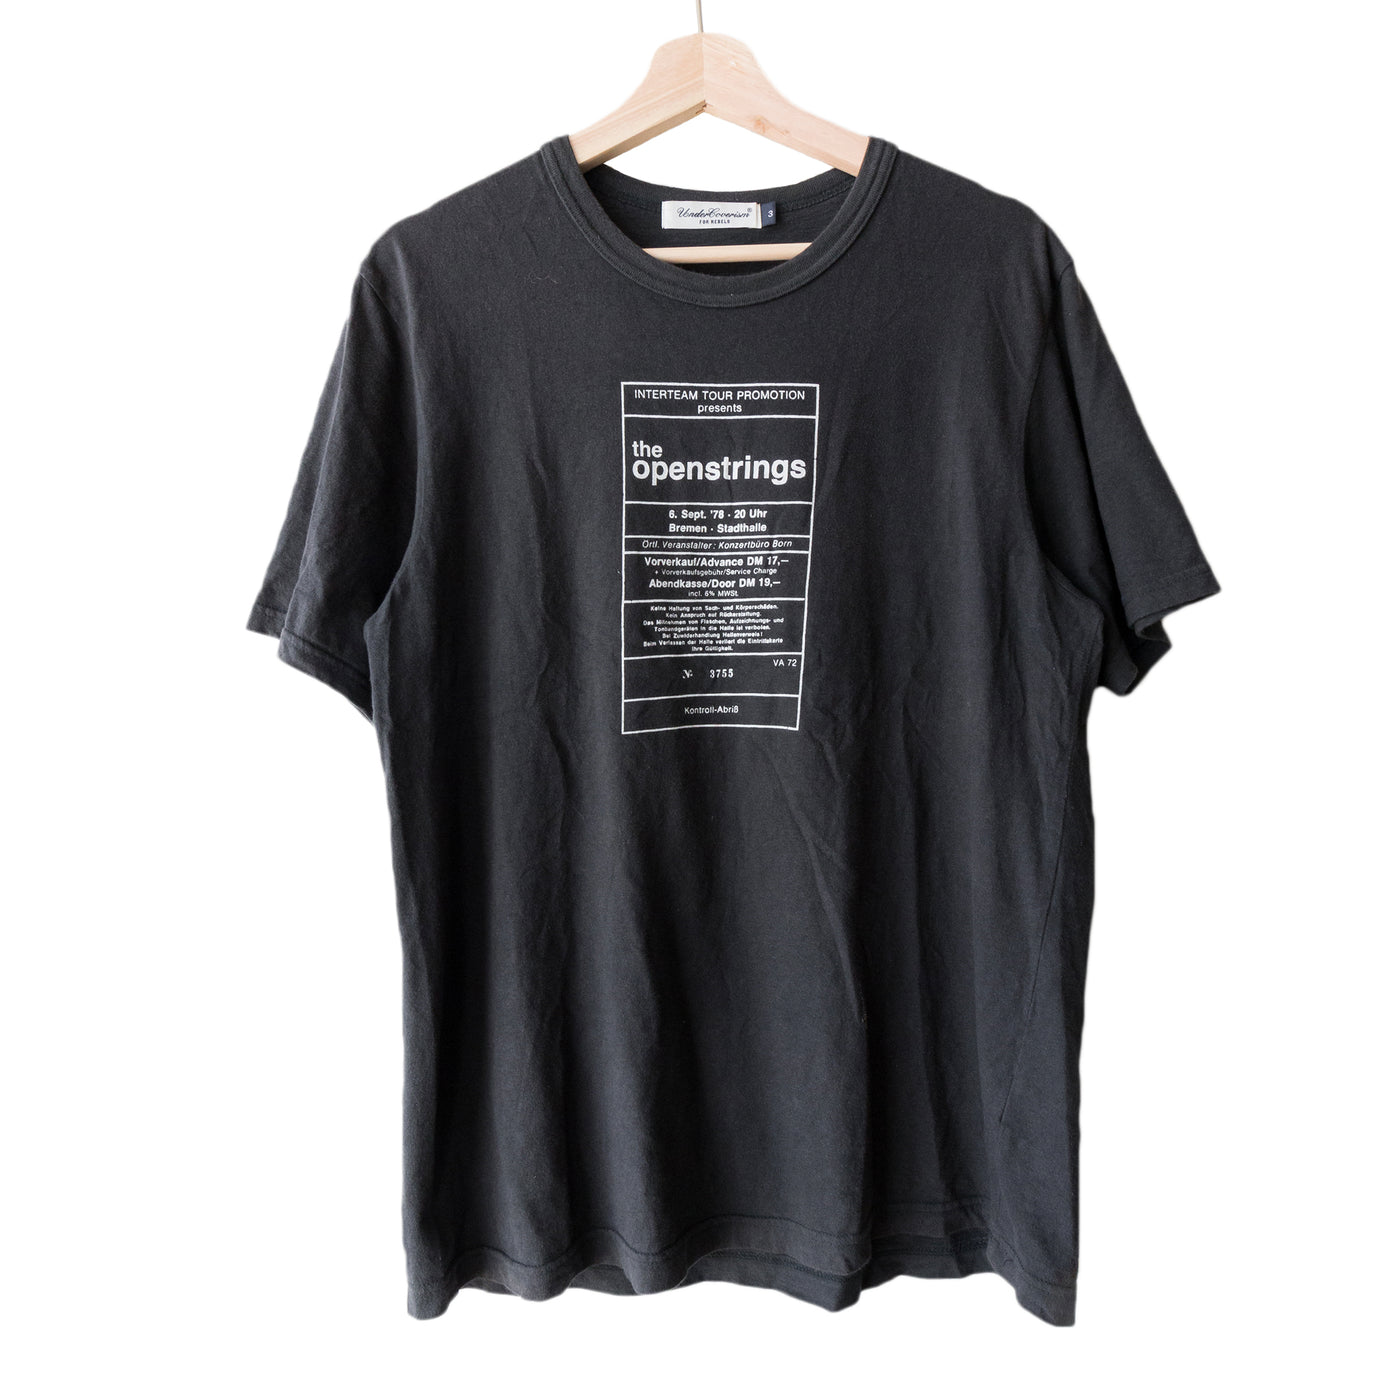 Undercover Openstrings Tee - SS12